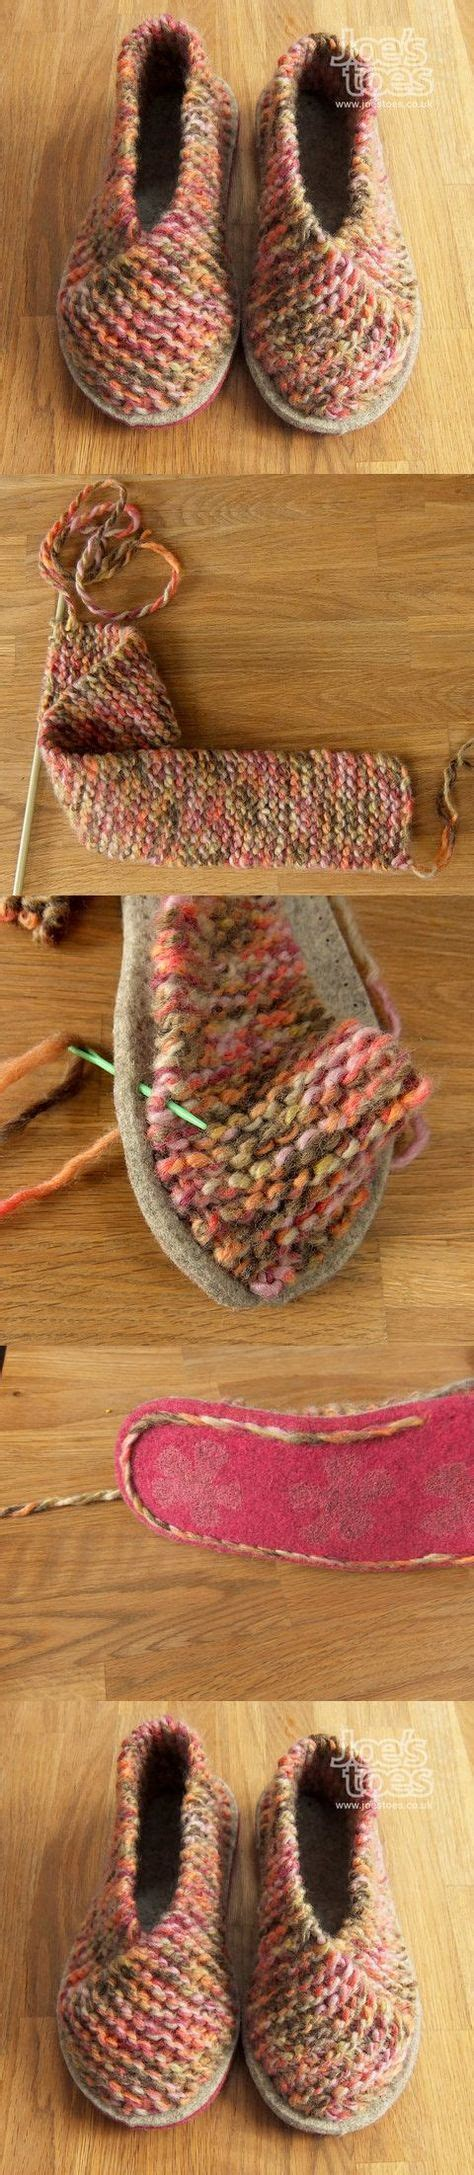 how to make knitted slippers knitted slippers pattern the sweetest ideas the whoot